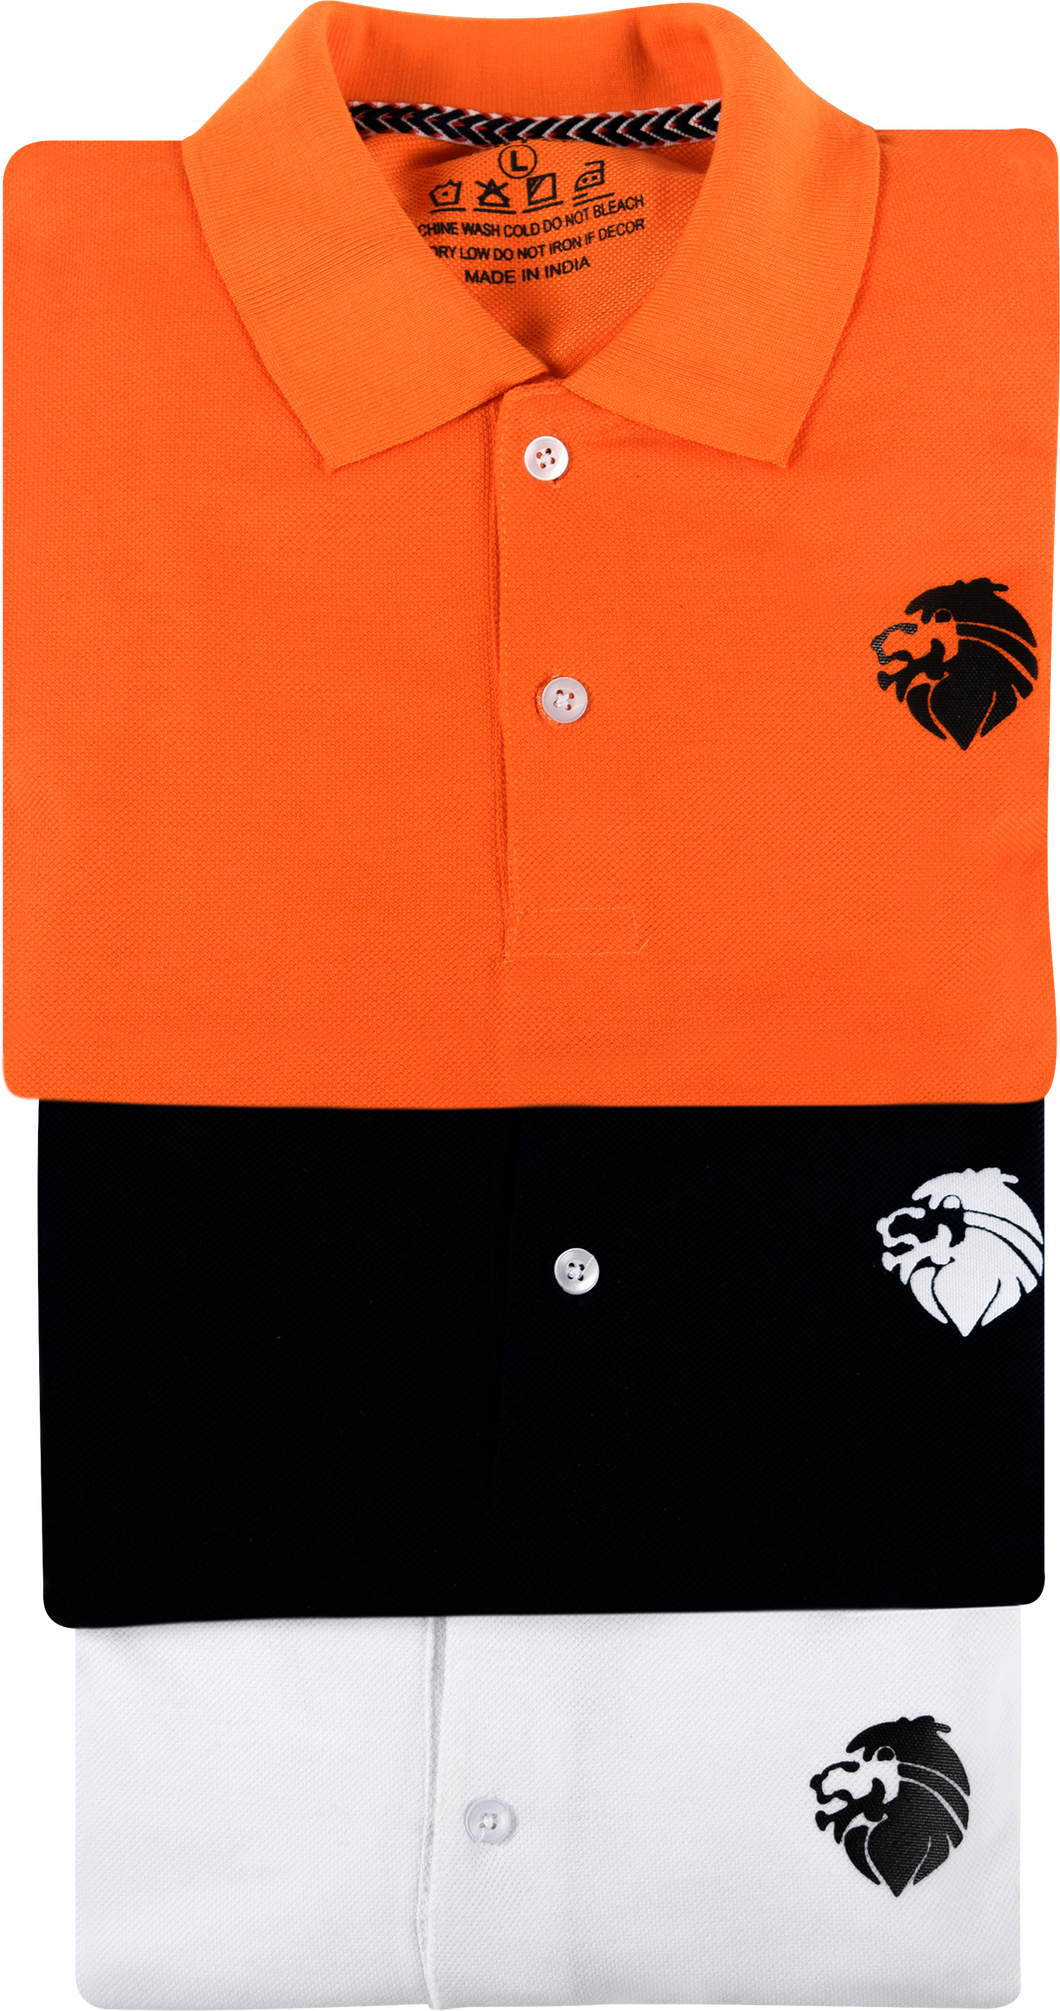 LionPolo Men's Cotton Soft Tshirts Combo - Pack of 3 (Orange, Black, White)